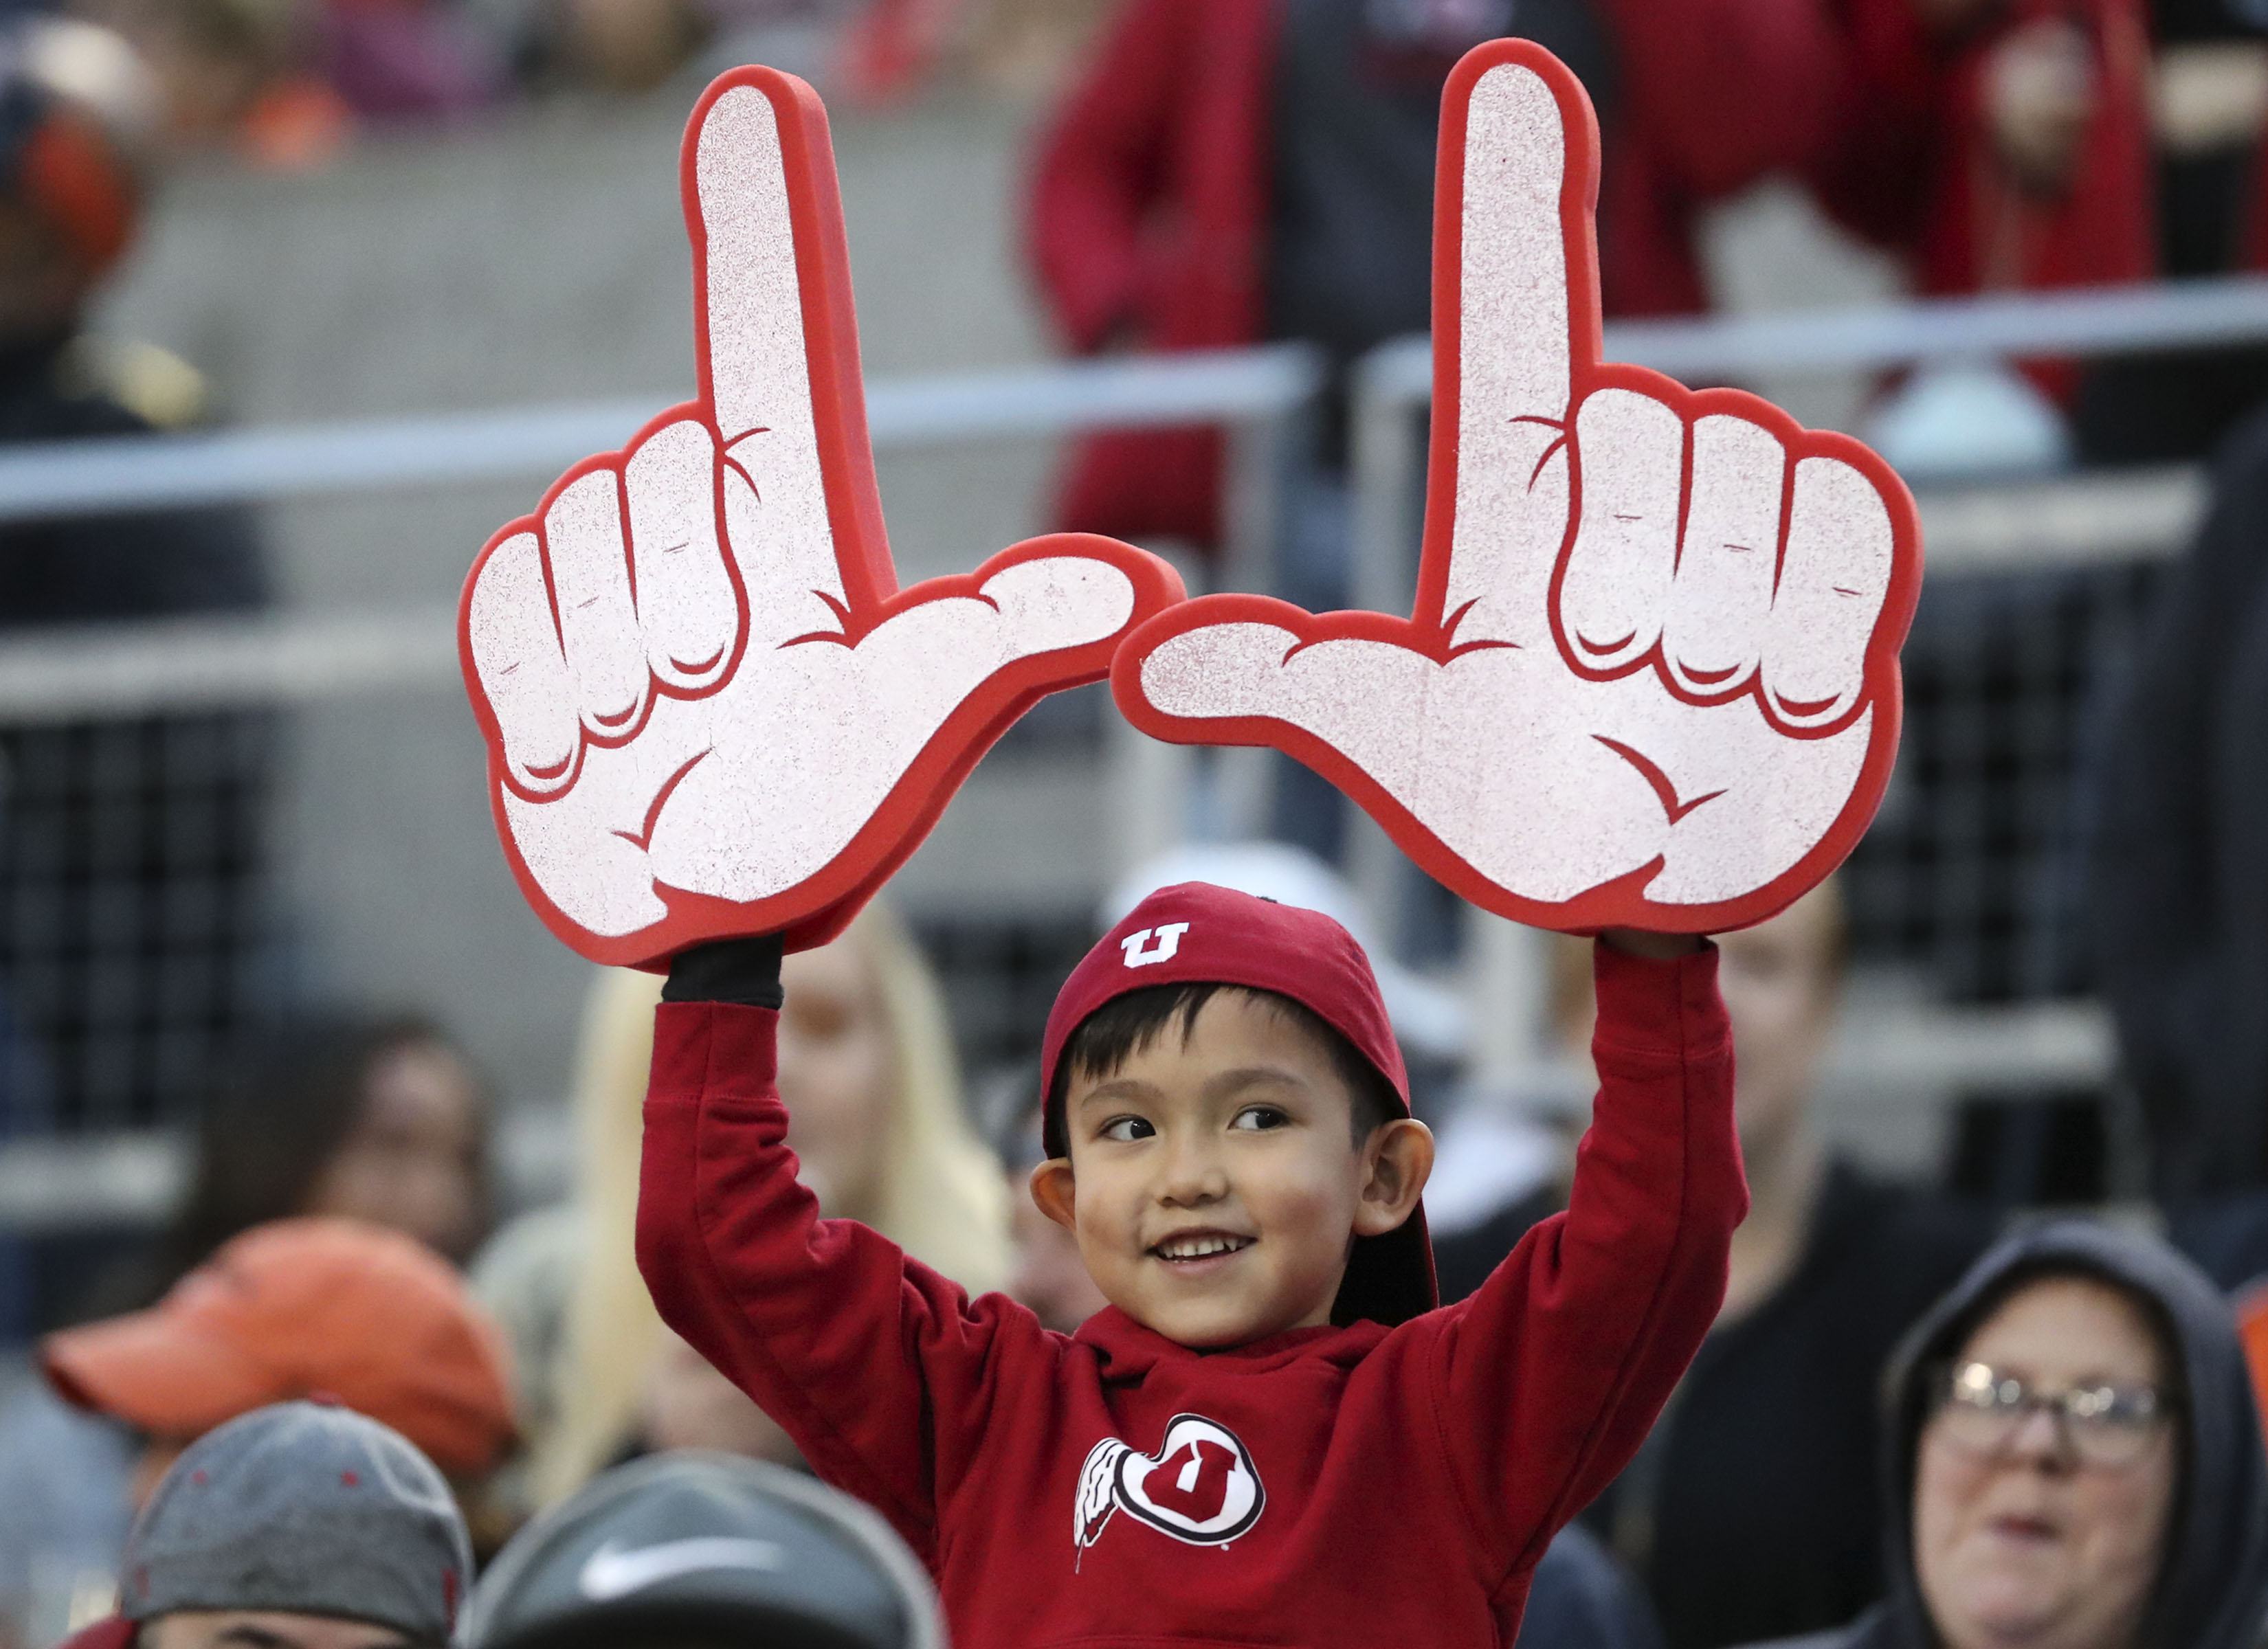 Rain Phinney supports the Utah Utes as they play the Oregon State Beavers in a football game at Reser Stadium in Corvallis, Ore., on Saturday, Oct. 12, 2019. Utah won 52-7.